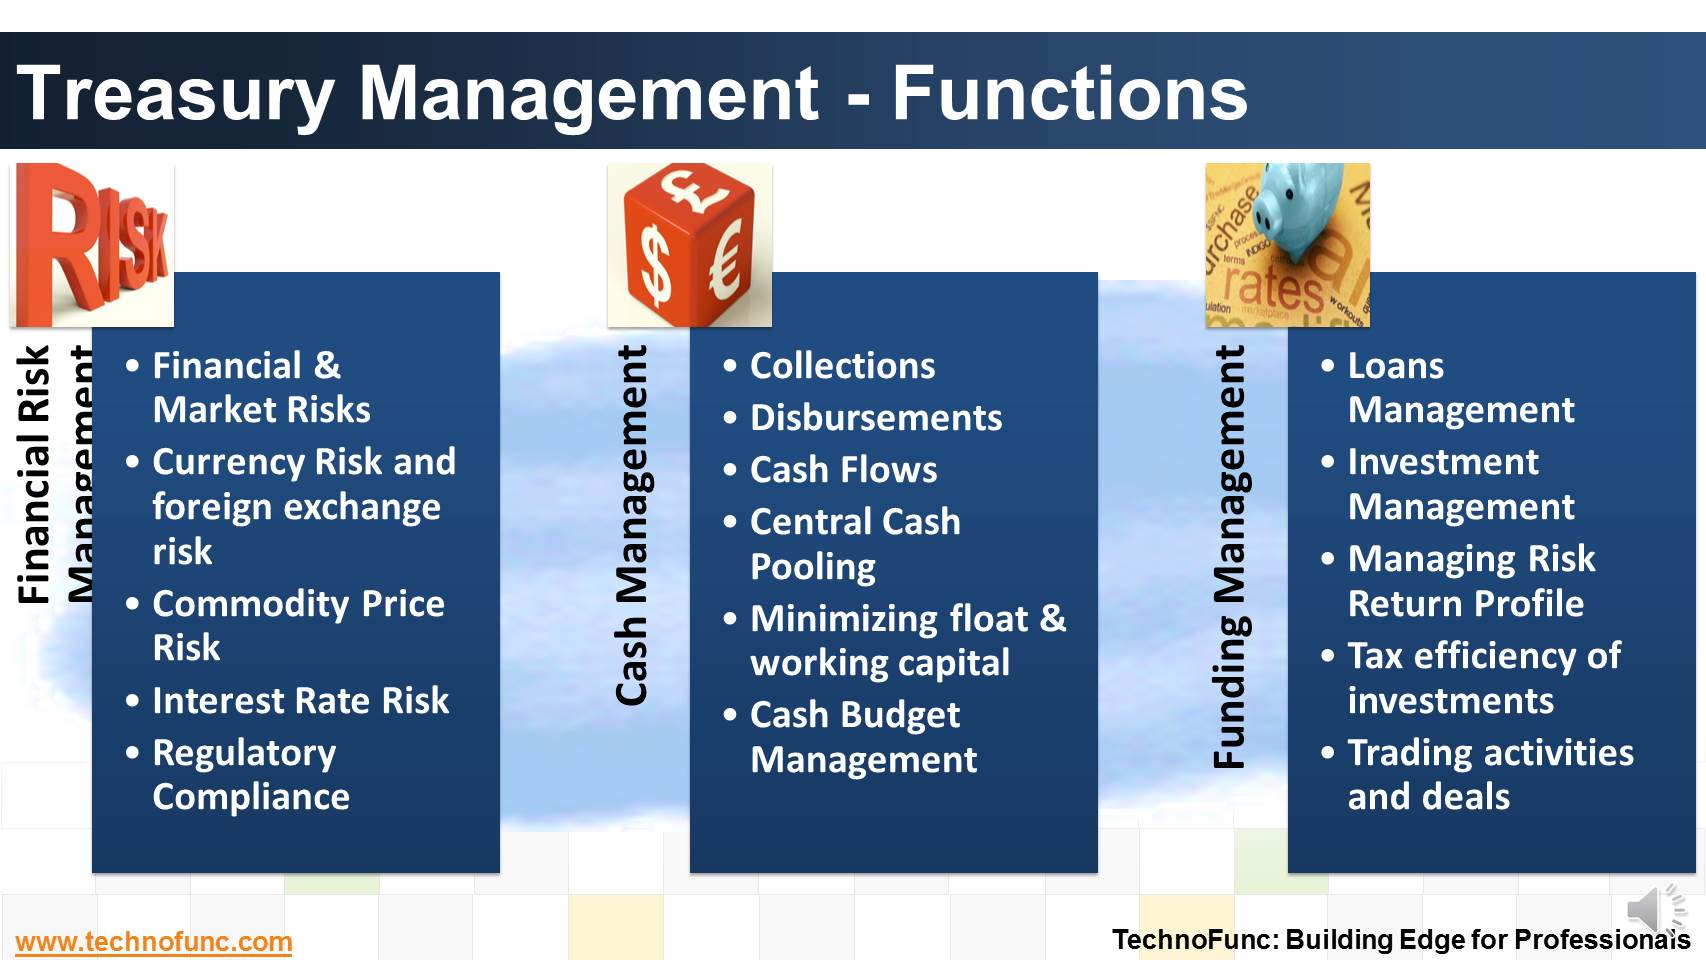 essays on the functions of management Since the management is important to an organisation, many writers develop the theories regarding of the management to improve organisation s' performance by describing the manager's works, it can be divided into management functions, roles and skills.